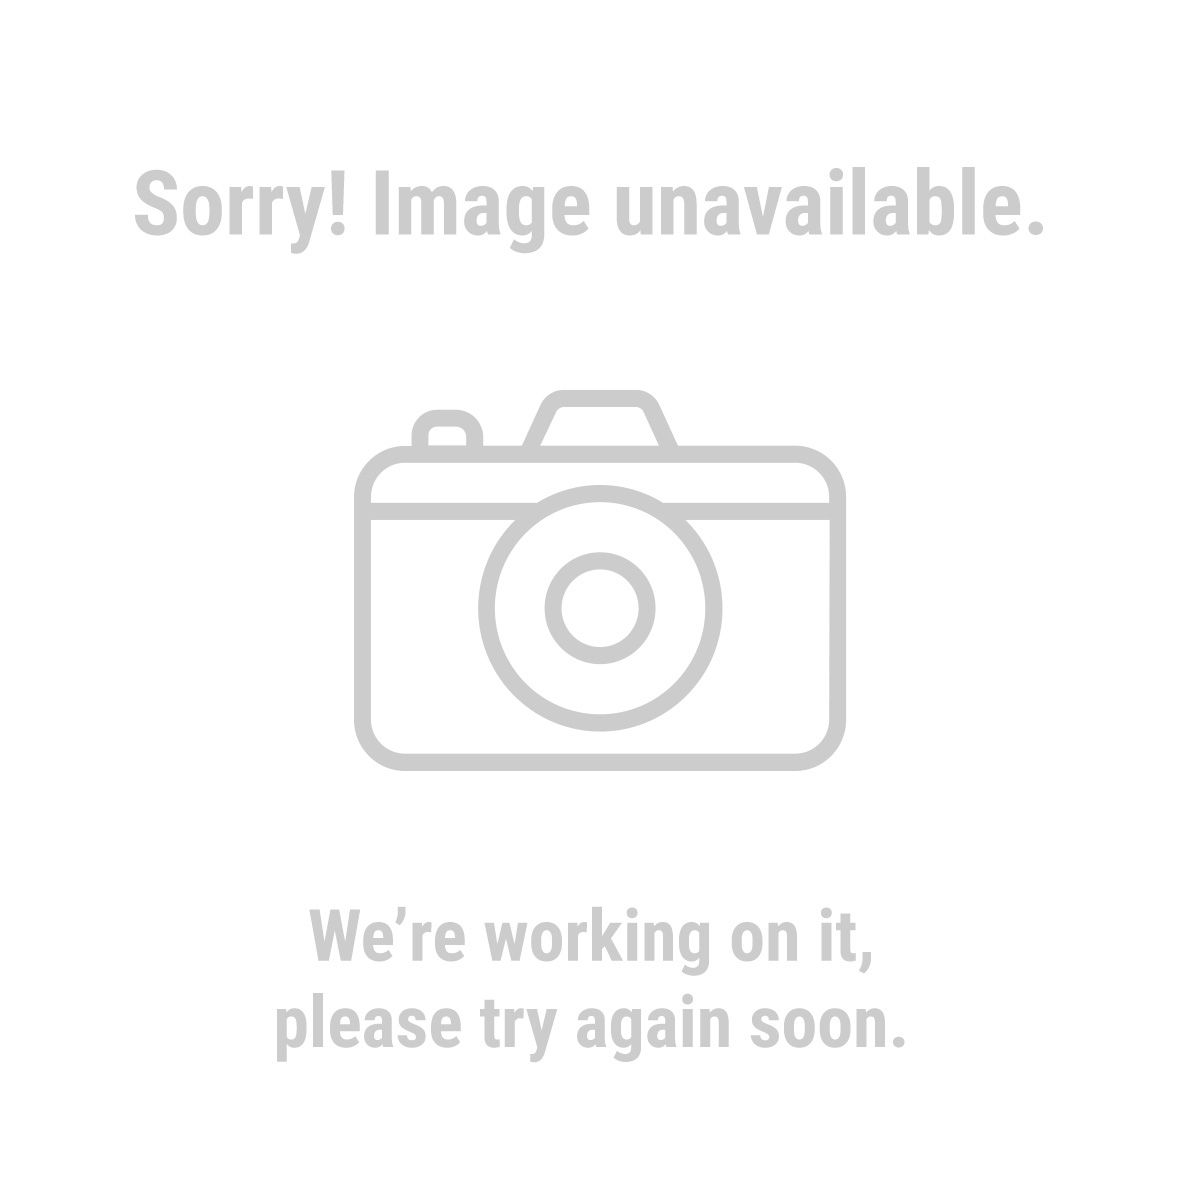 Haul-Master 61426 Piece Tie Down Kit